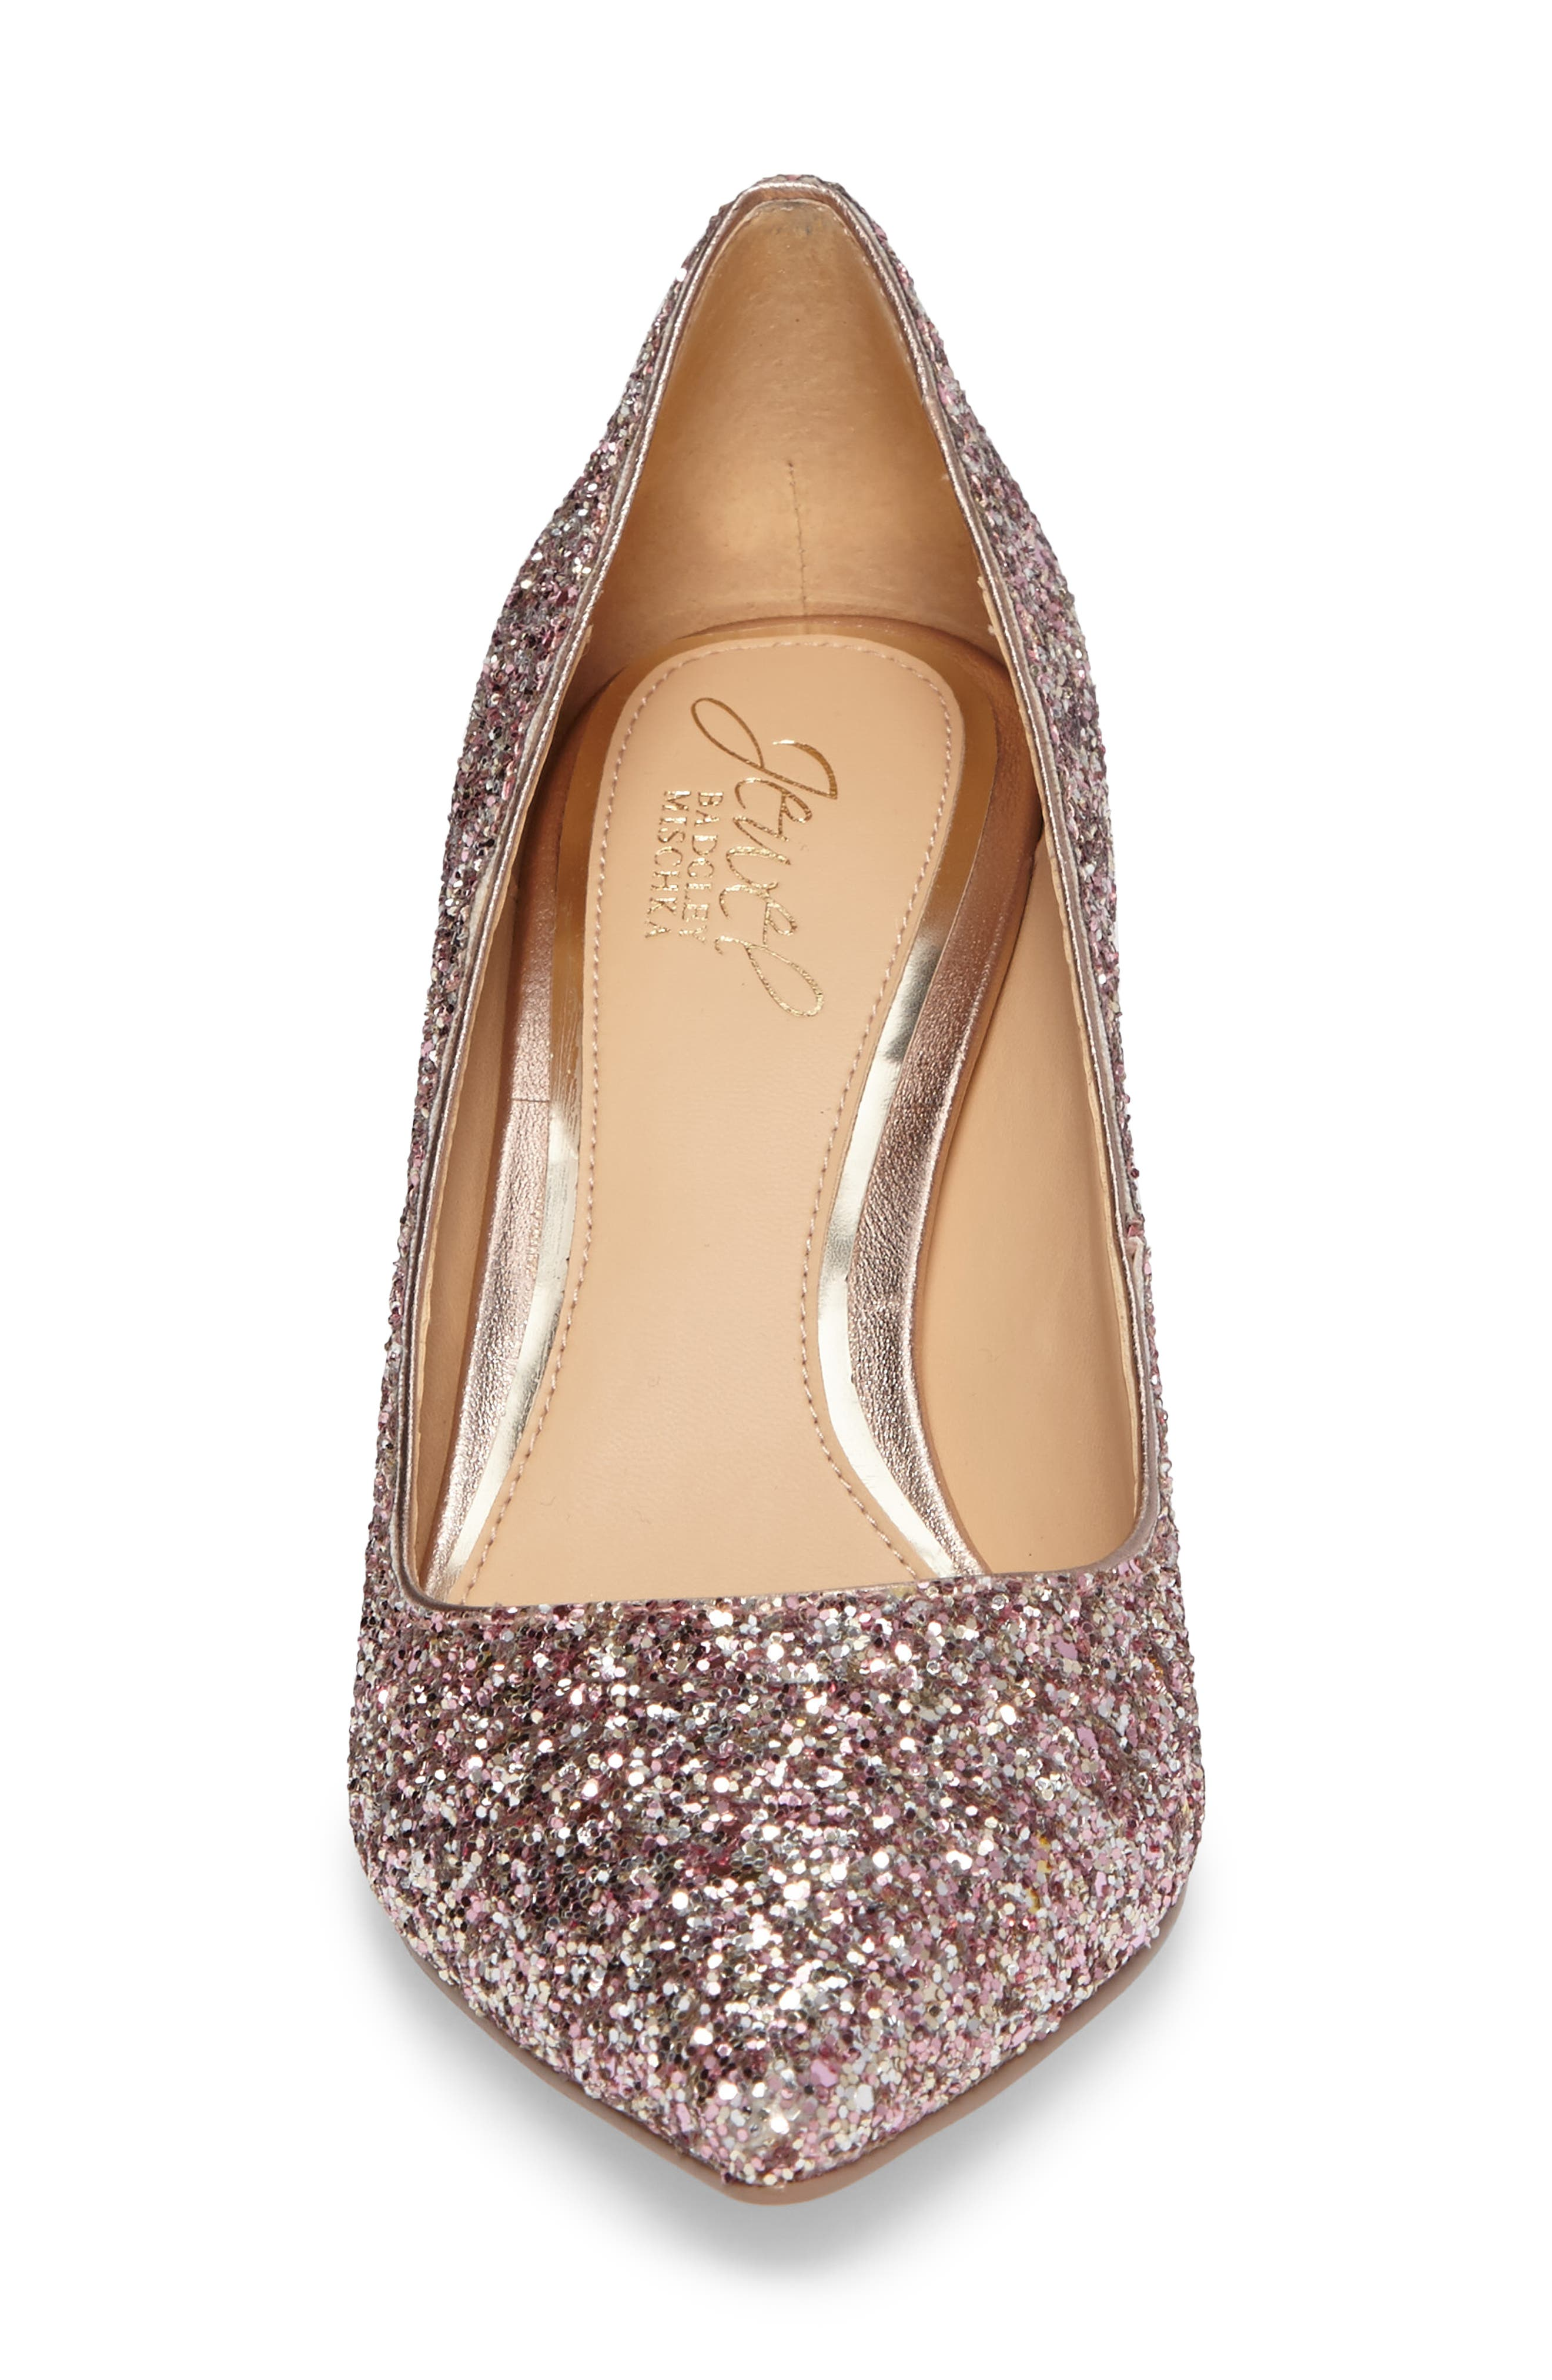 Lyla Glitter Pointy Toe Pump,                             Alternate thumbnail 4, color,                             ROSE GOLD